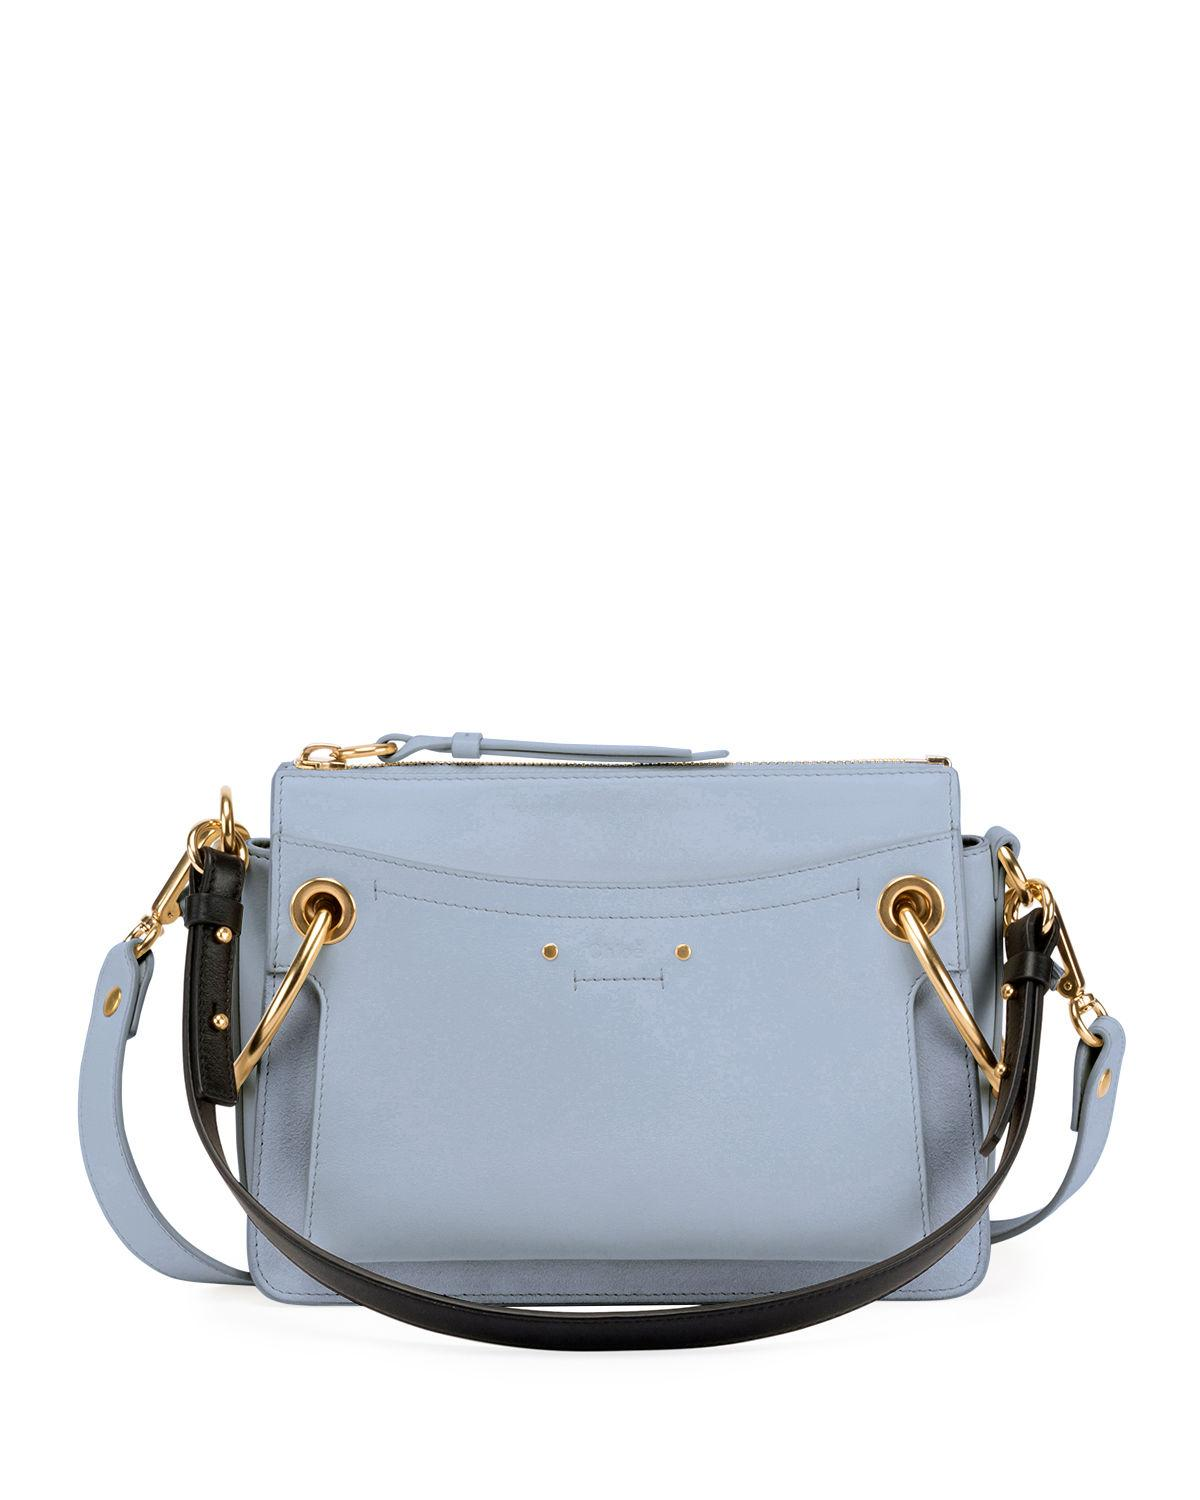 900e54e32eff Chloe shoulder bag in aniline-dyed calf leather and buffed suede. Flat top  handle. Removable